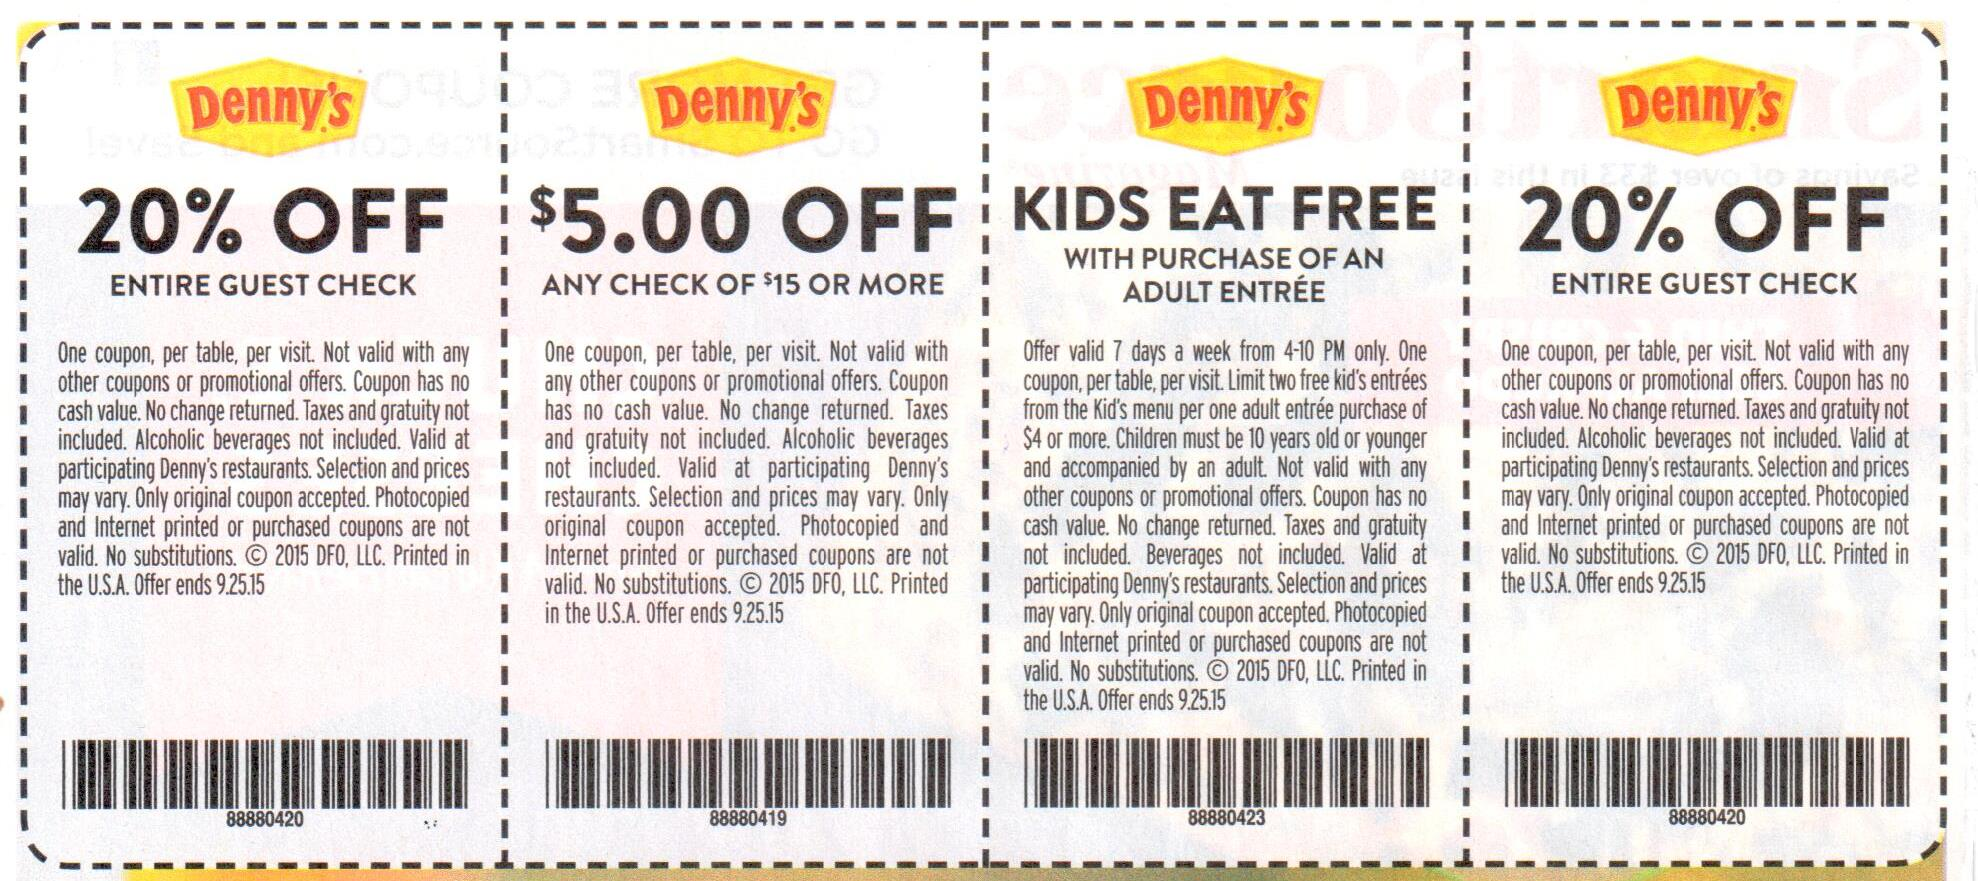 Godaddy discount coupons 2018